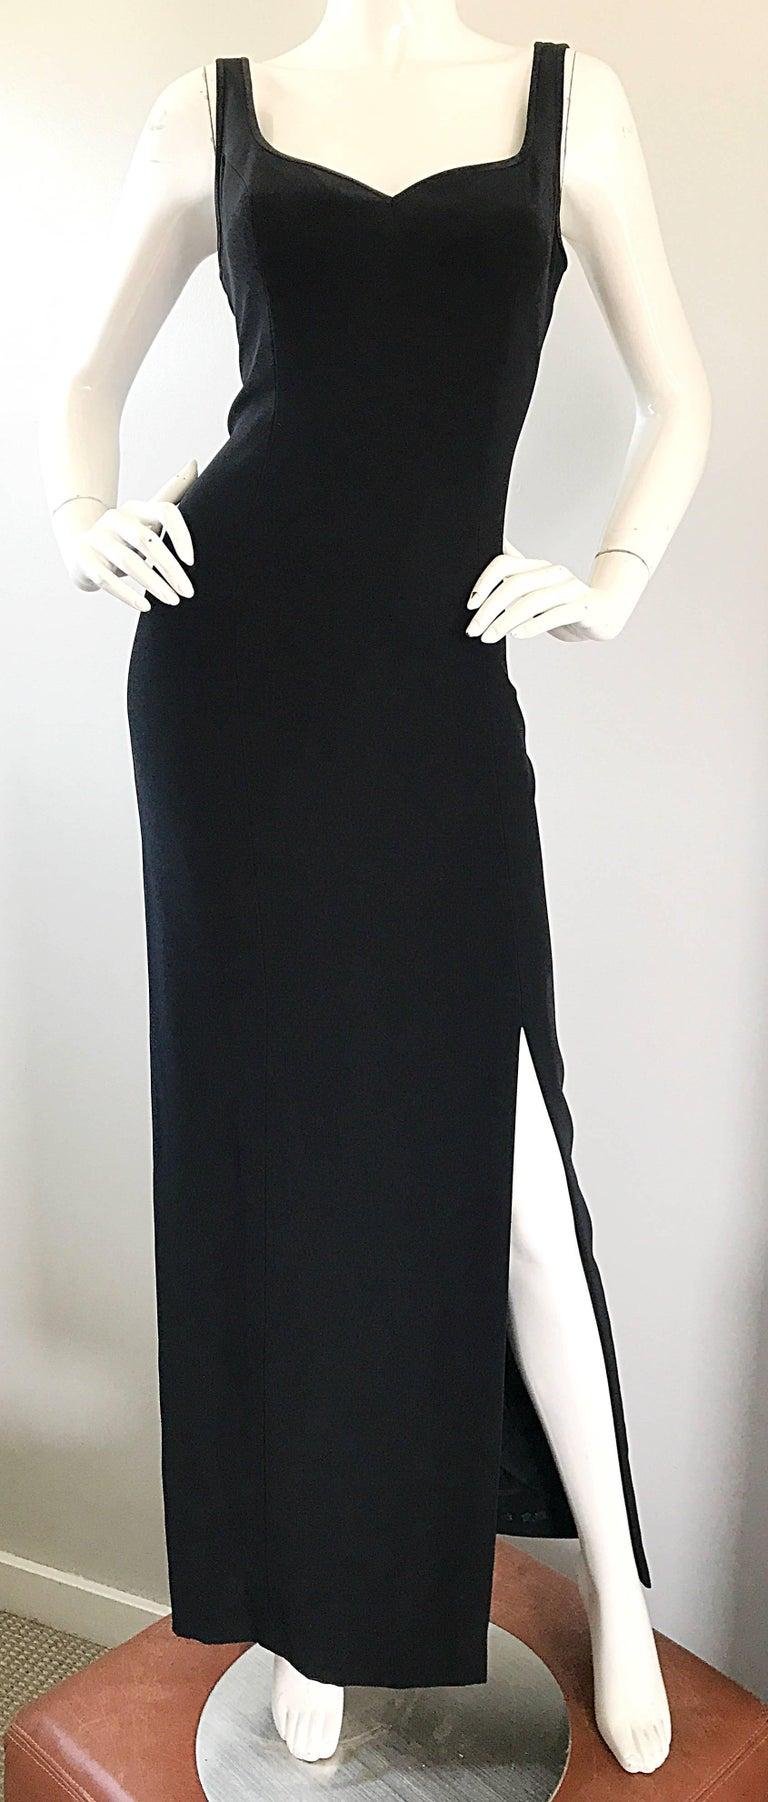 Women's 1990s Bob Mackie Size 10 Black Crepe Sexy 90s Vintage High Slit Evening Gown  For Sale